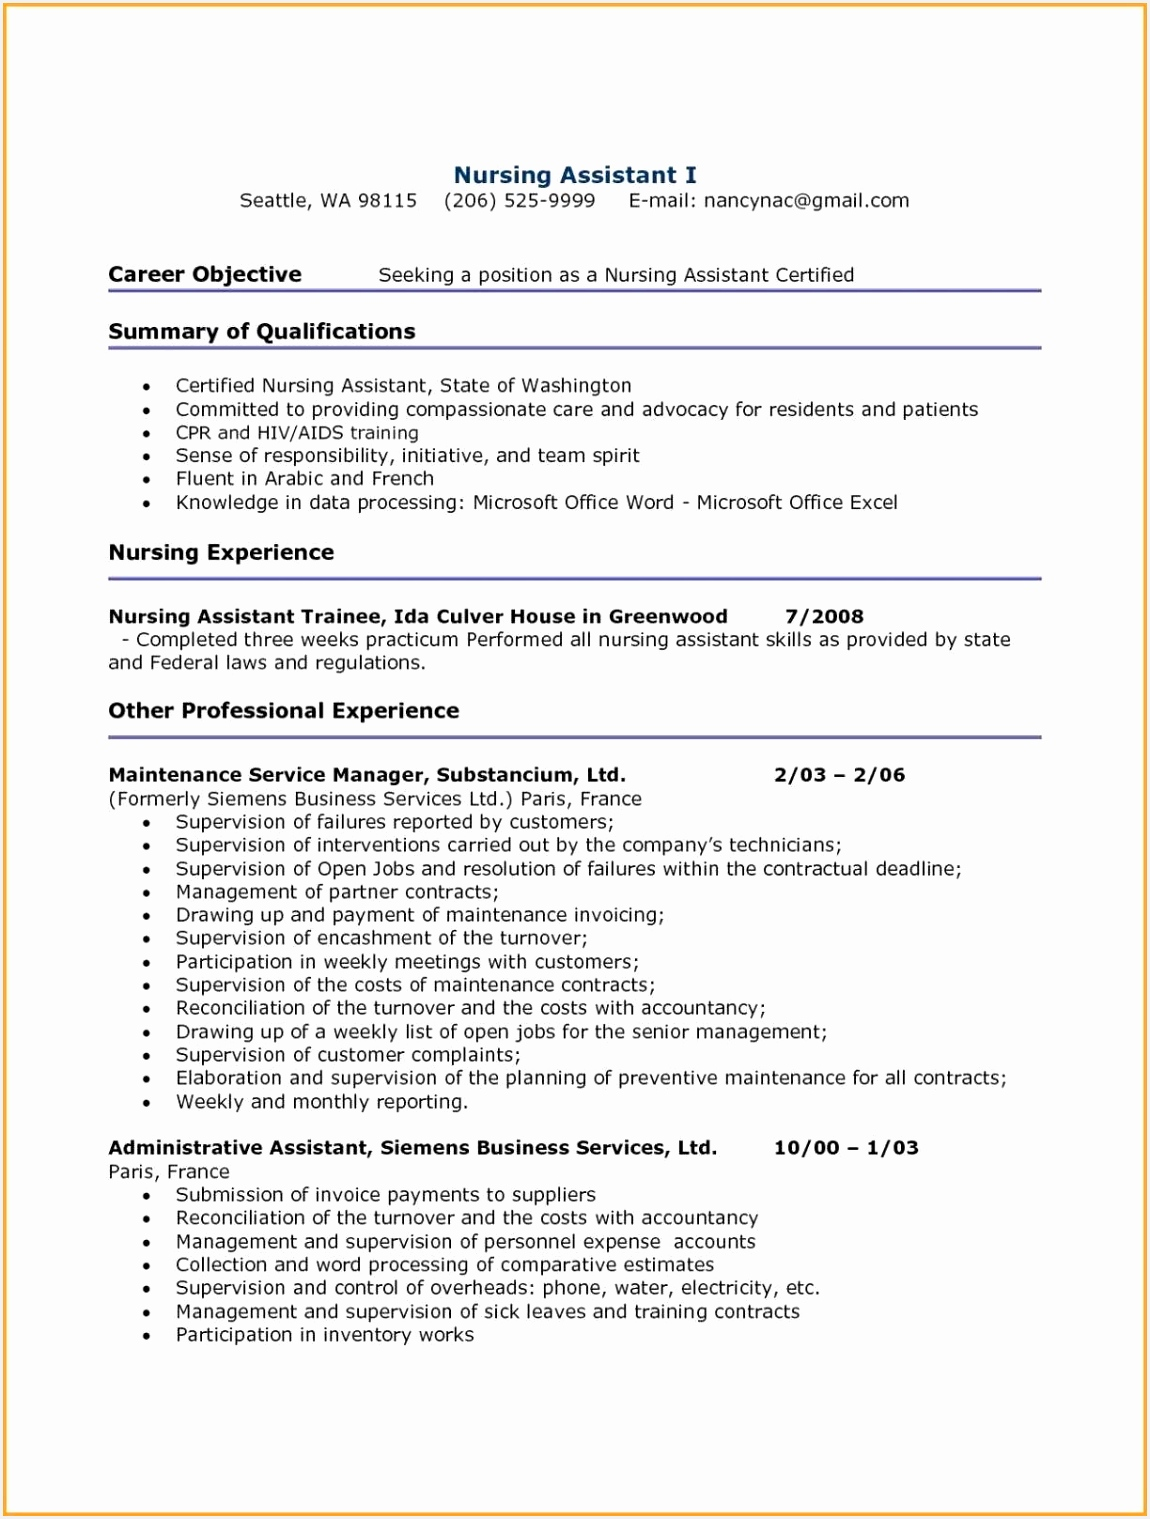 Microsoft Trainer Sample Resume Rduqf Awesome Cover Letter Email format Lovely Email Cover Letters New Resume Of Microsoft Trainer Sample Resume Vjdoe Unique Sample Pilot Resume – Microsoft Dynamics Ax Sample Resume Archives